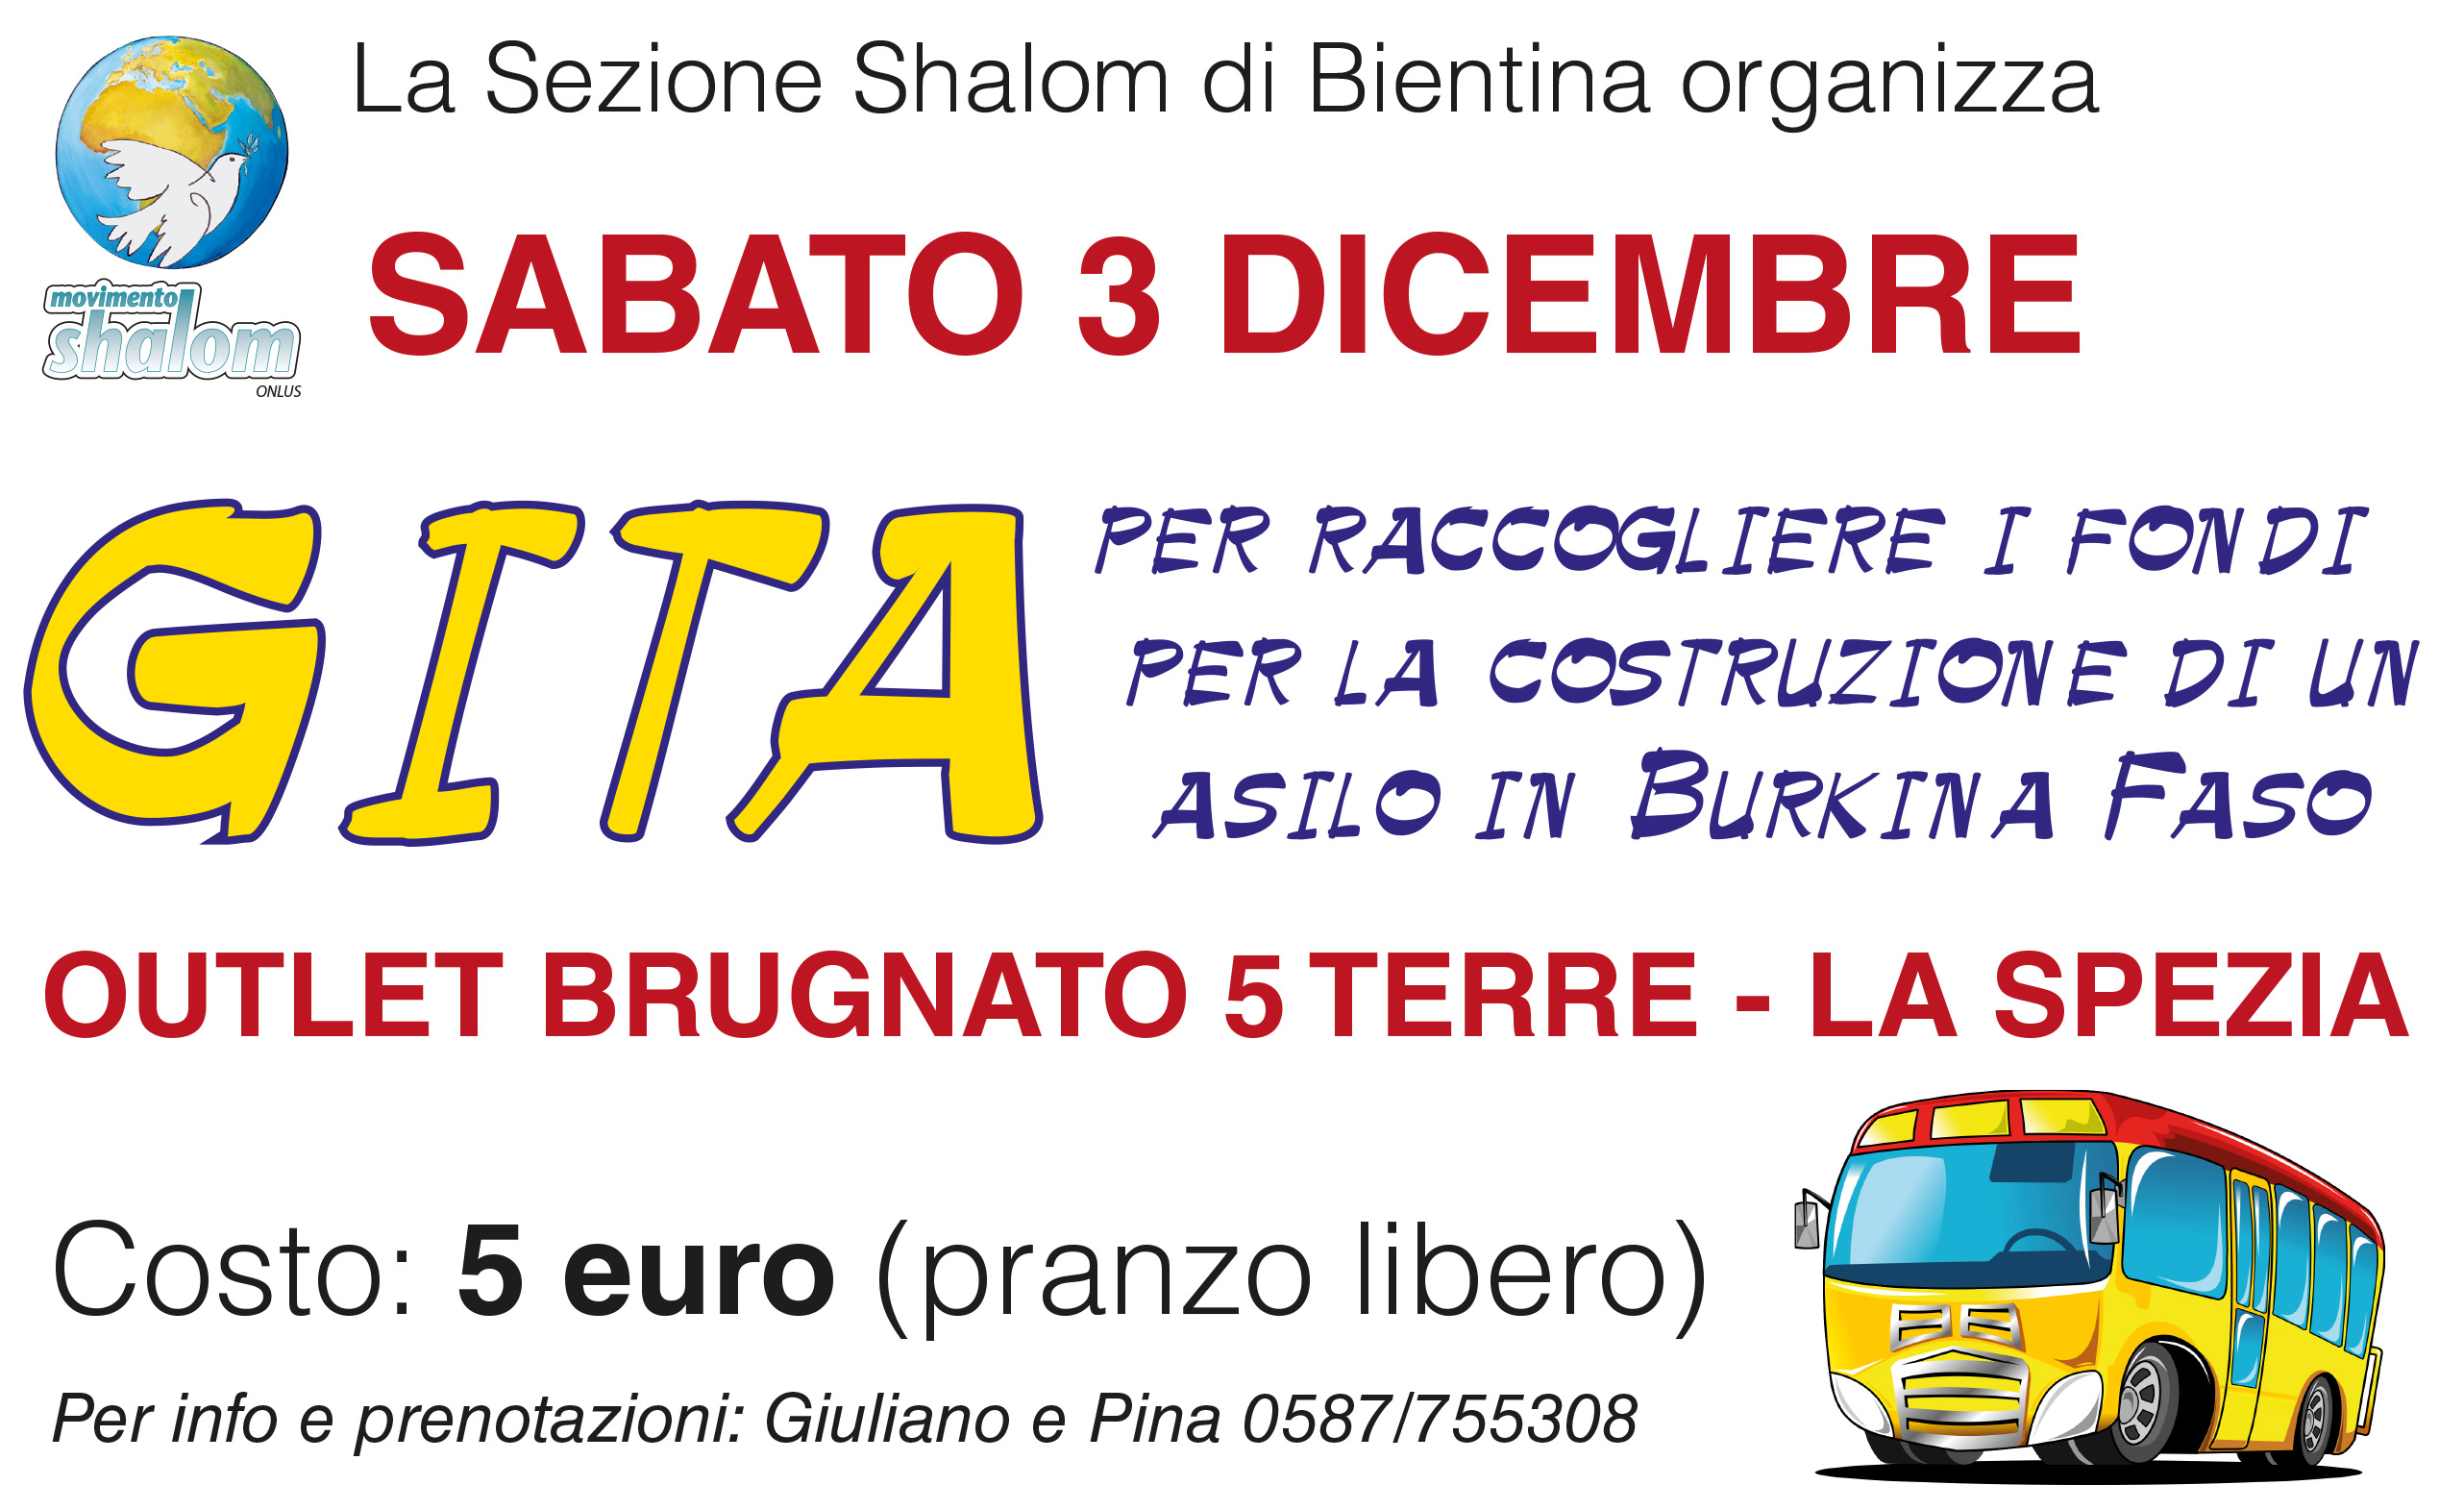 Gita all\'outlet di Brugnato 5 Terre – sabato 3 dicembre | Movimento ...